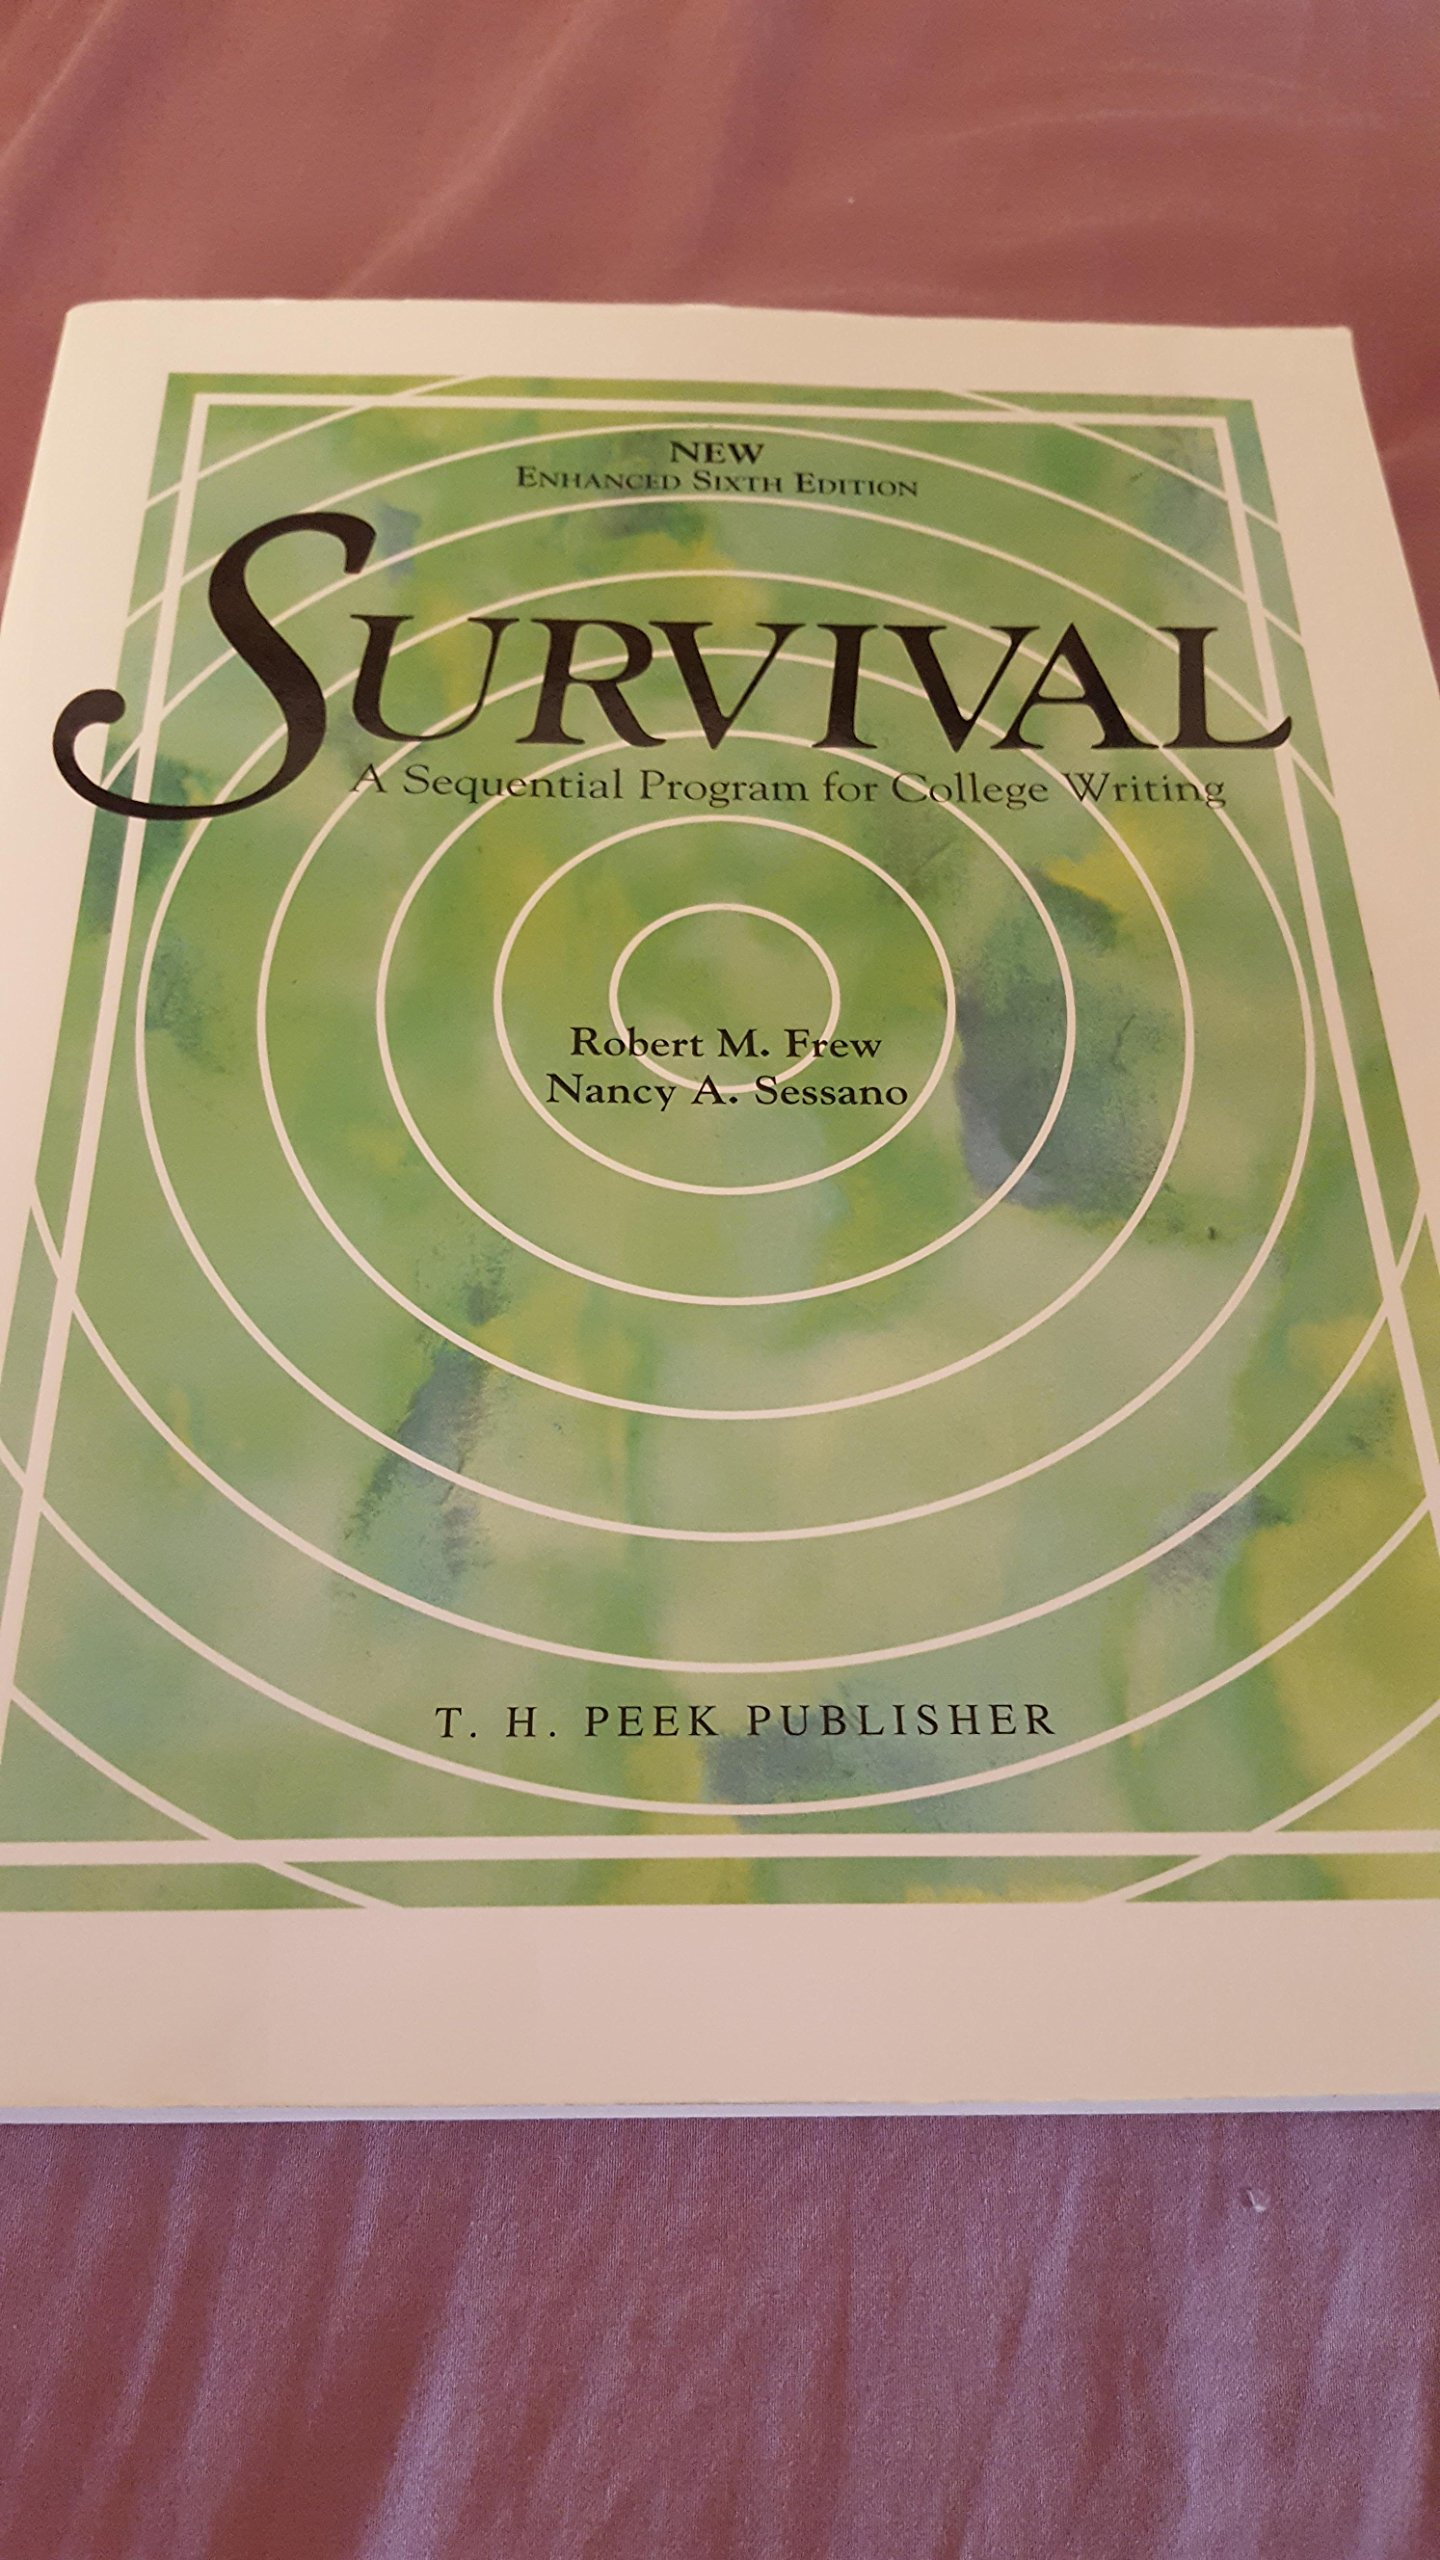 Survival - Enhanced 6th Edition A Sequential Program for College Writing:  Robert Frew: 9780917962868: Amazon.com: Books